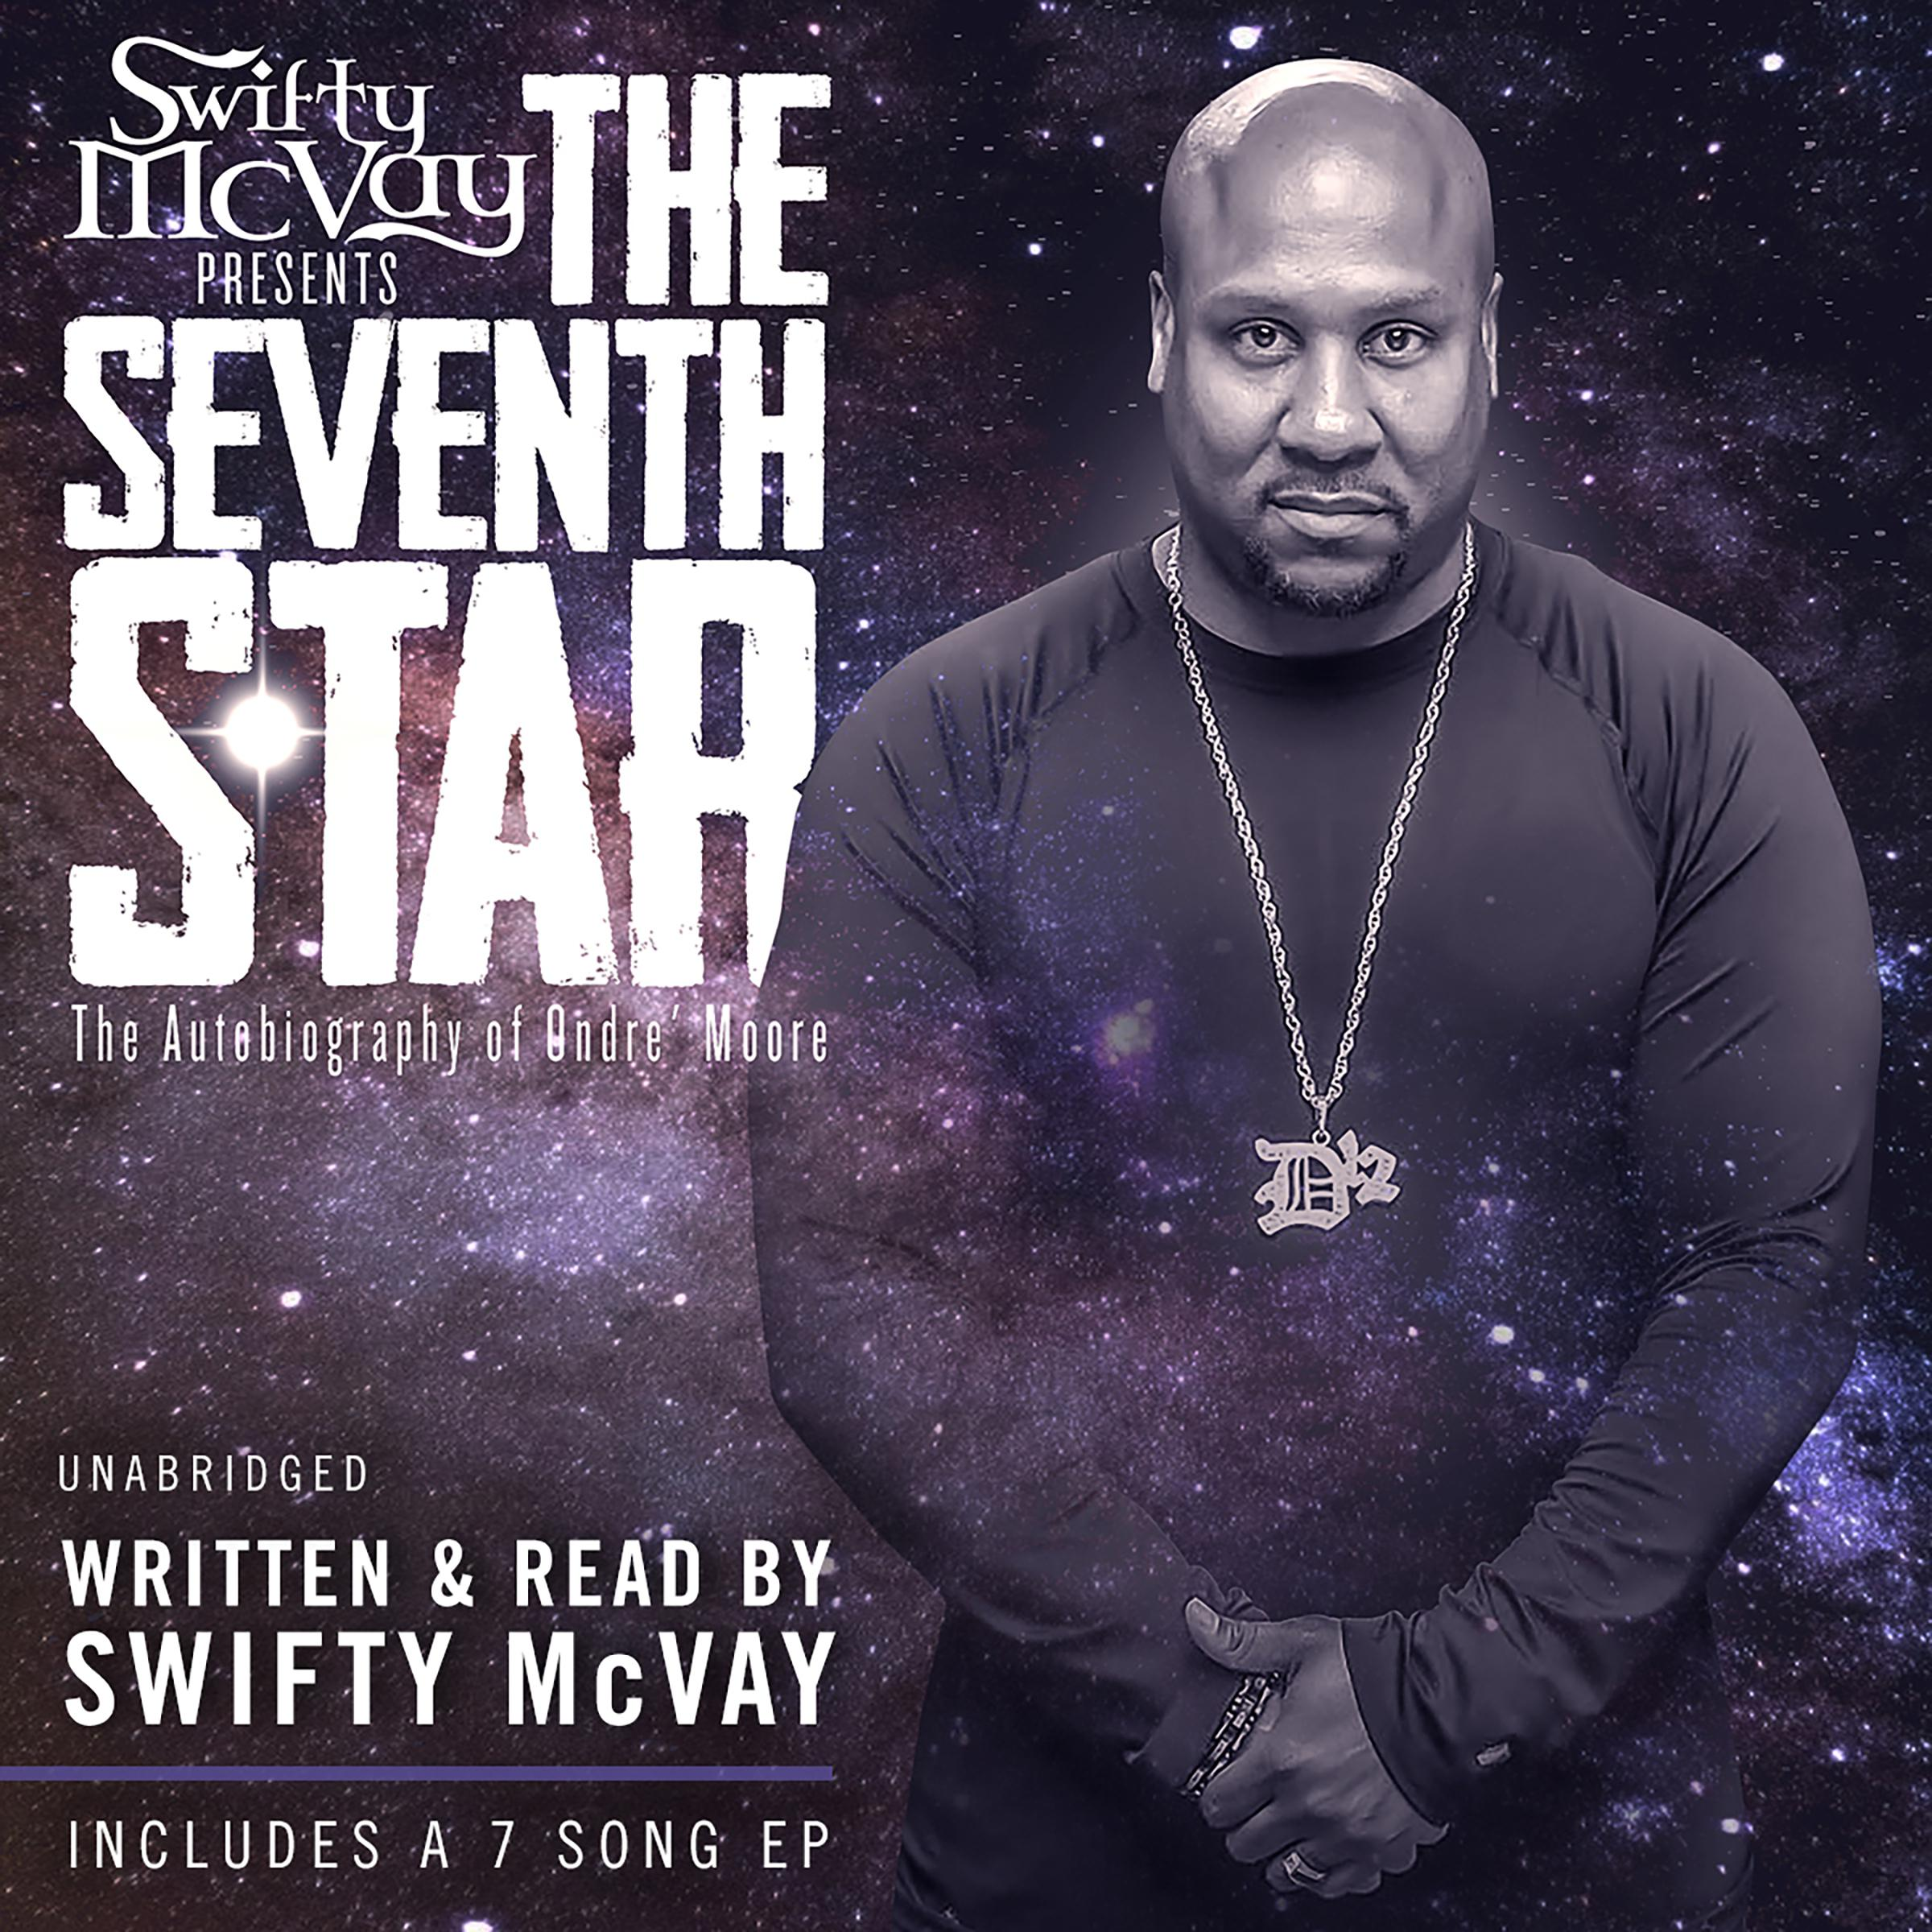 Printable Swifty McVay Presents: The Seventh Star: The Autobiography Of Ondré Moore Audiobook Cover Art